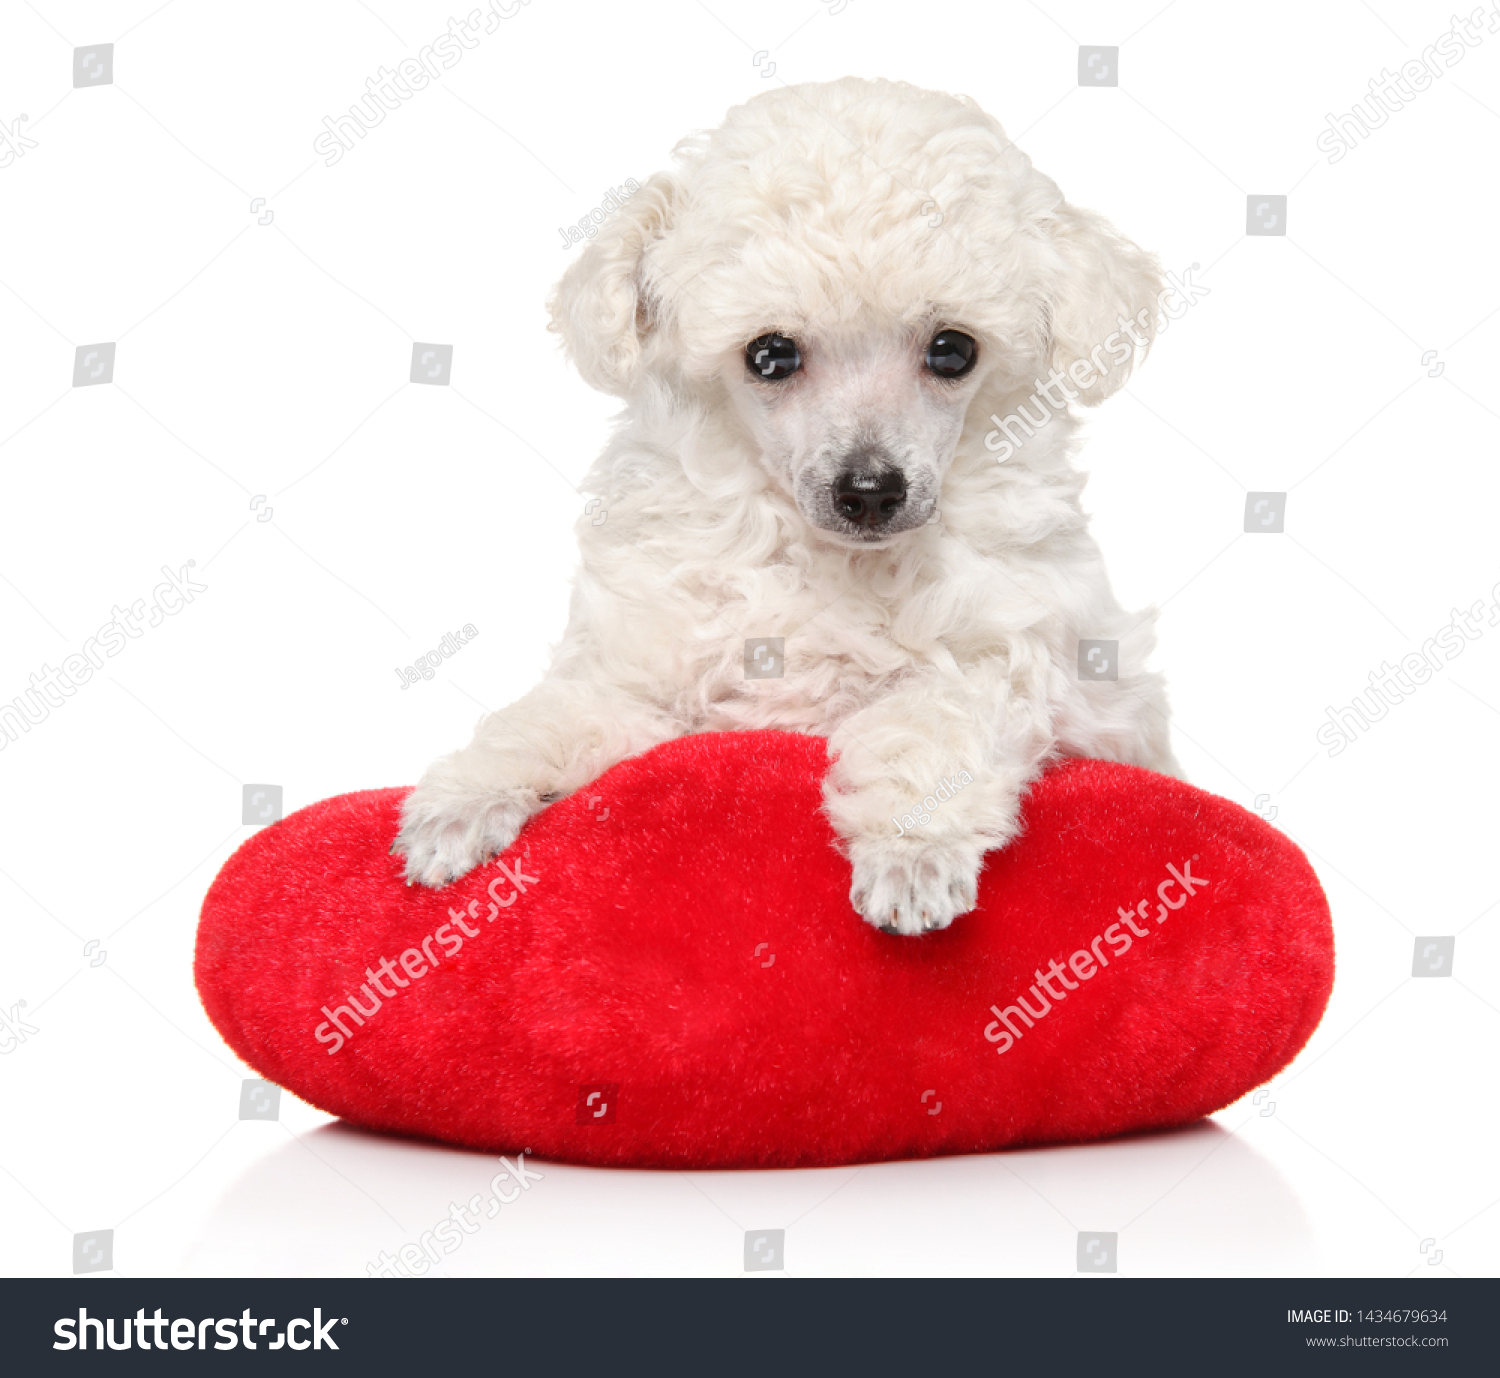 White Toy Poodle Puppy Lying On Red Pillow On White Background Baby Animal Theme